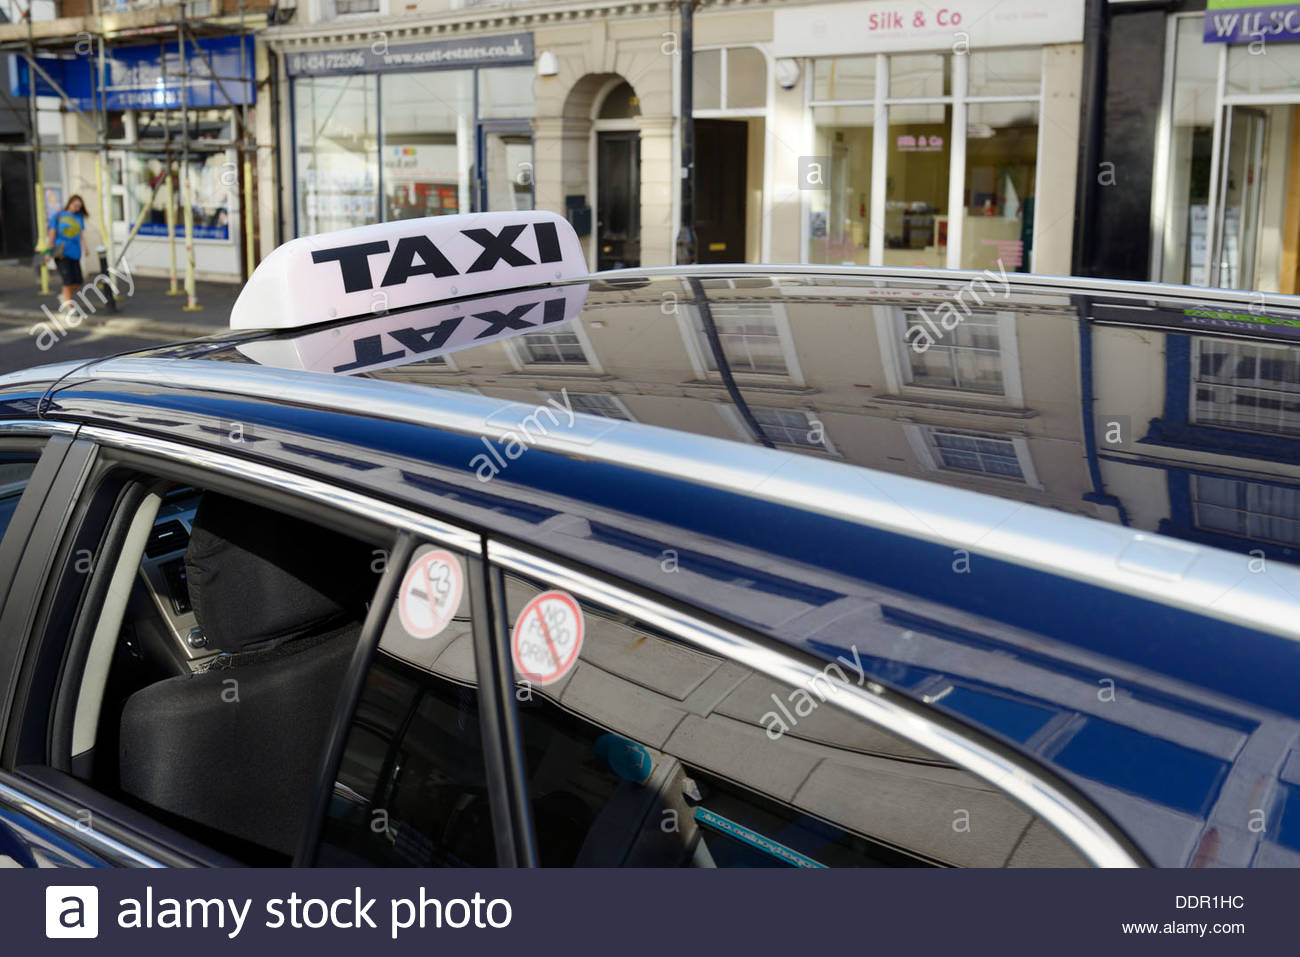 En taxi, rue Hastings, East Sussex, Angleterre, Royaume-Uni Photo Stock